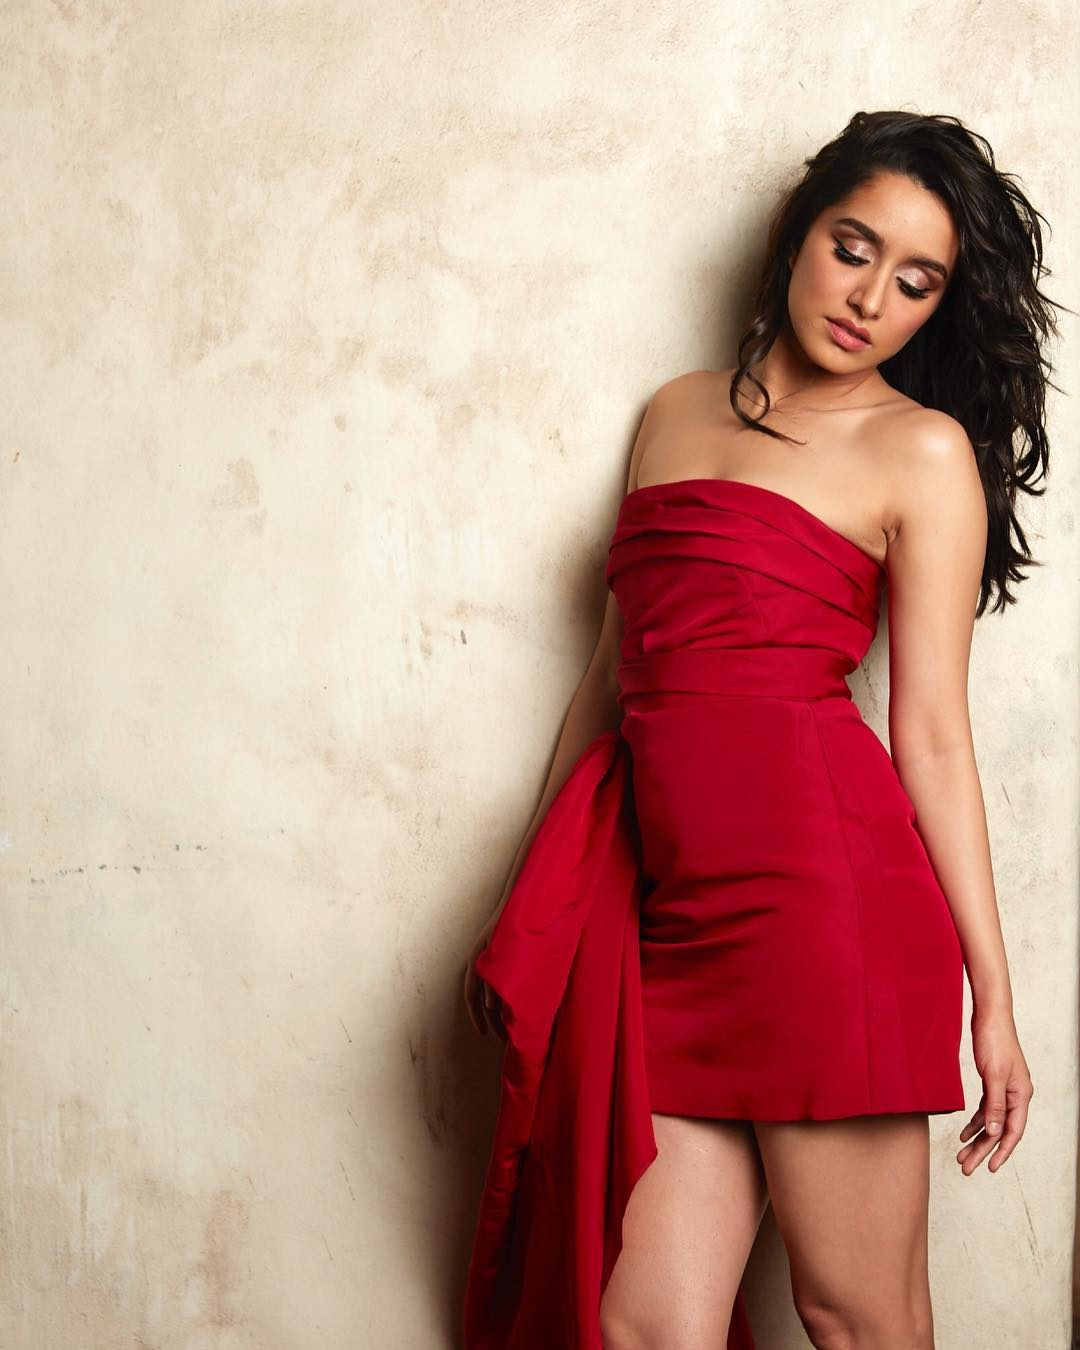 Shraddha Kapoor in Reem Acra's Red Mini Dress